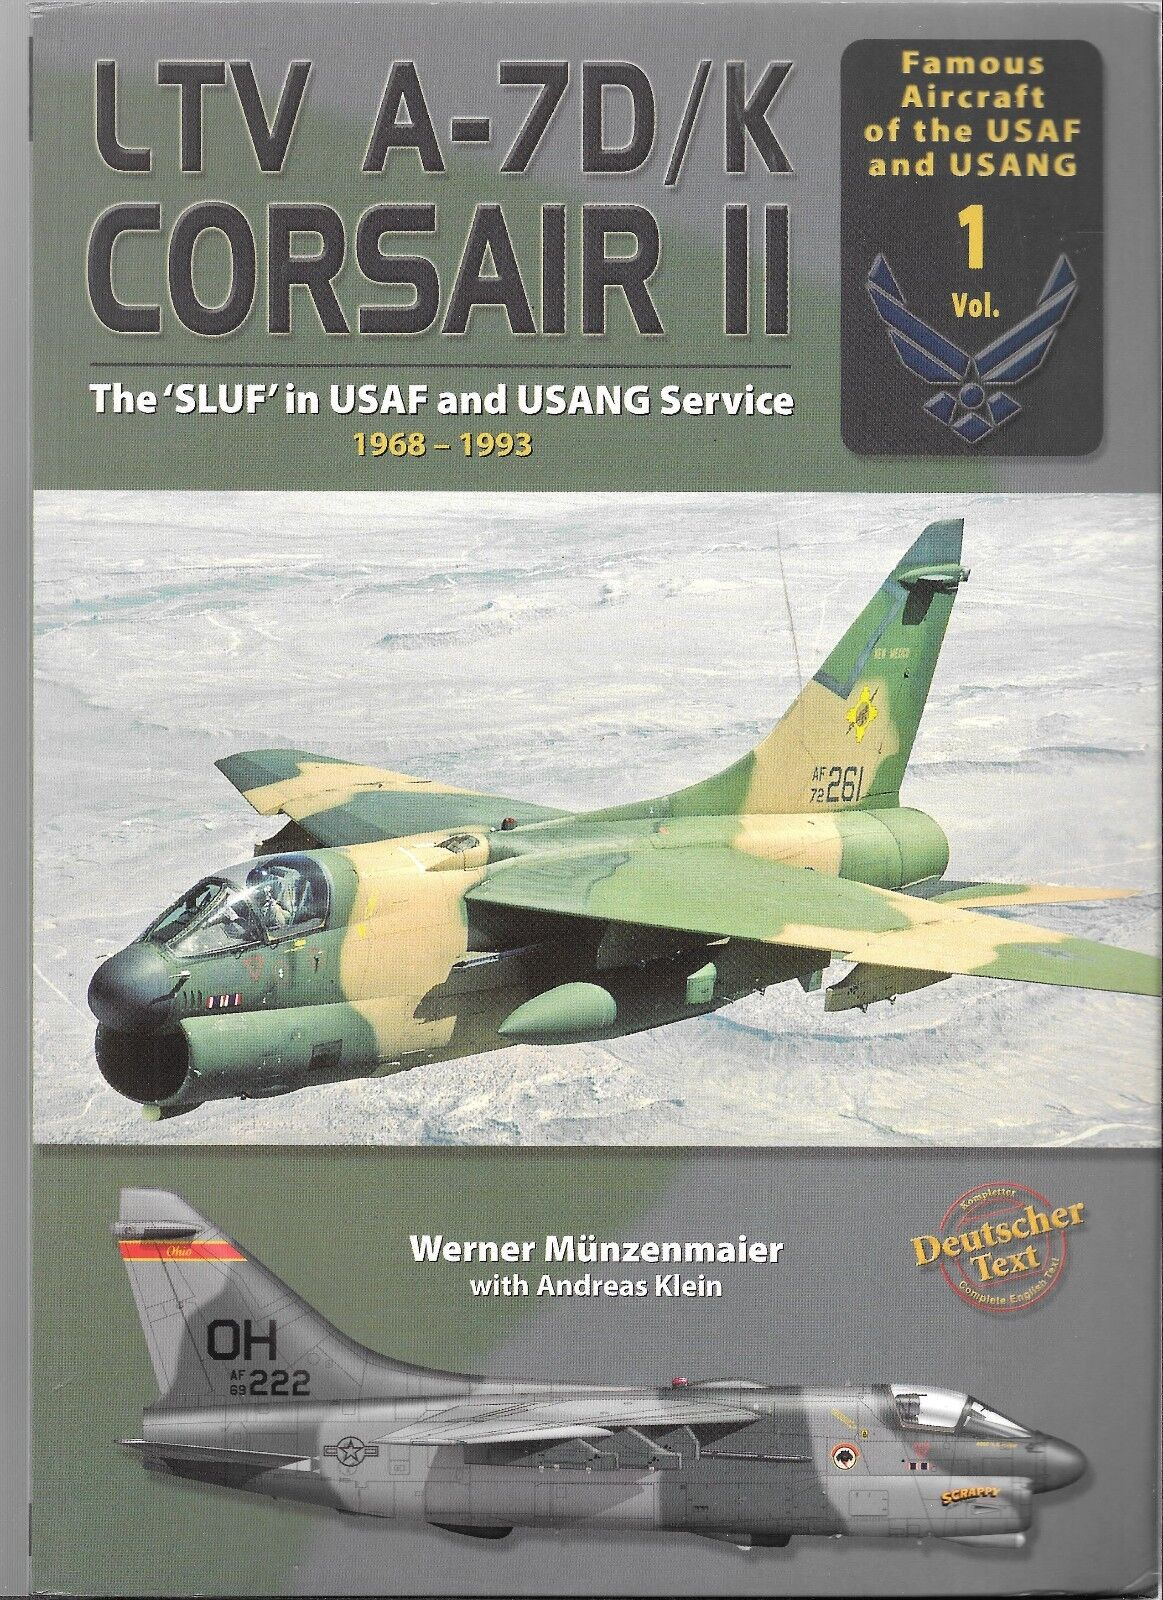 Double Ugly LTV A-7D  K Corsair II Softcover Reference FN